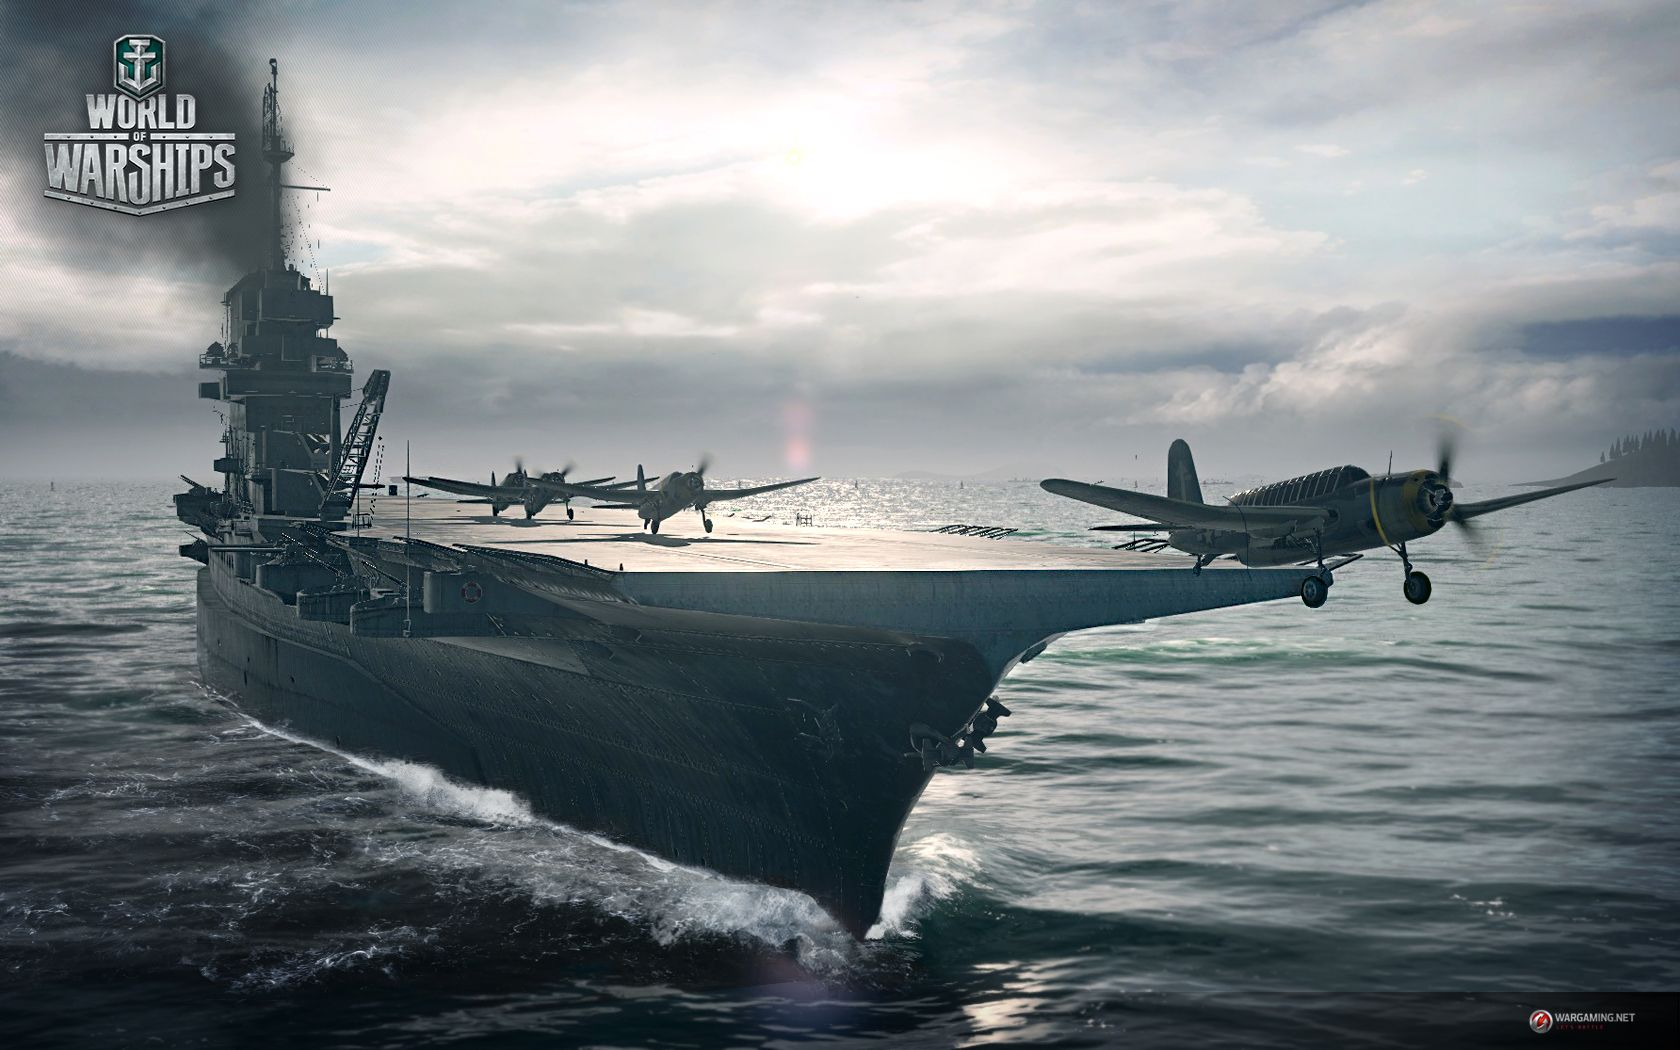 World Of Warships Game Download Online Multiplayer Naval Game About Battleships World Of Warships 画像あり 海軍 船 絵画